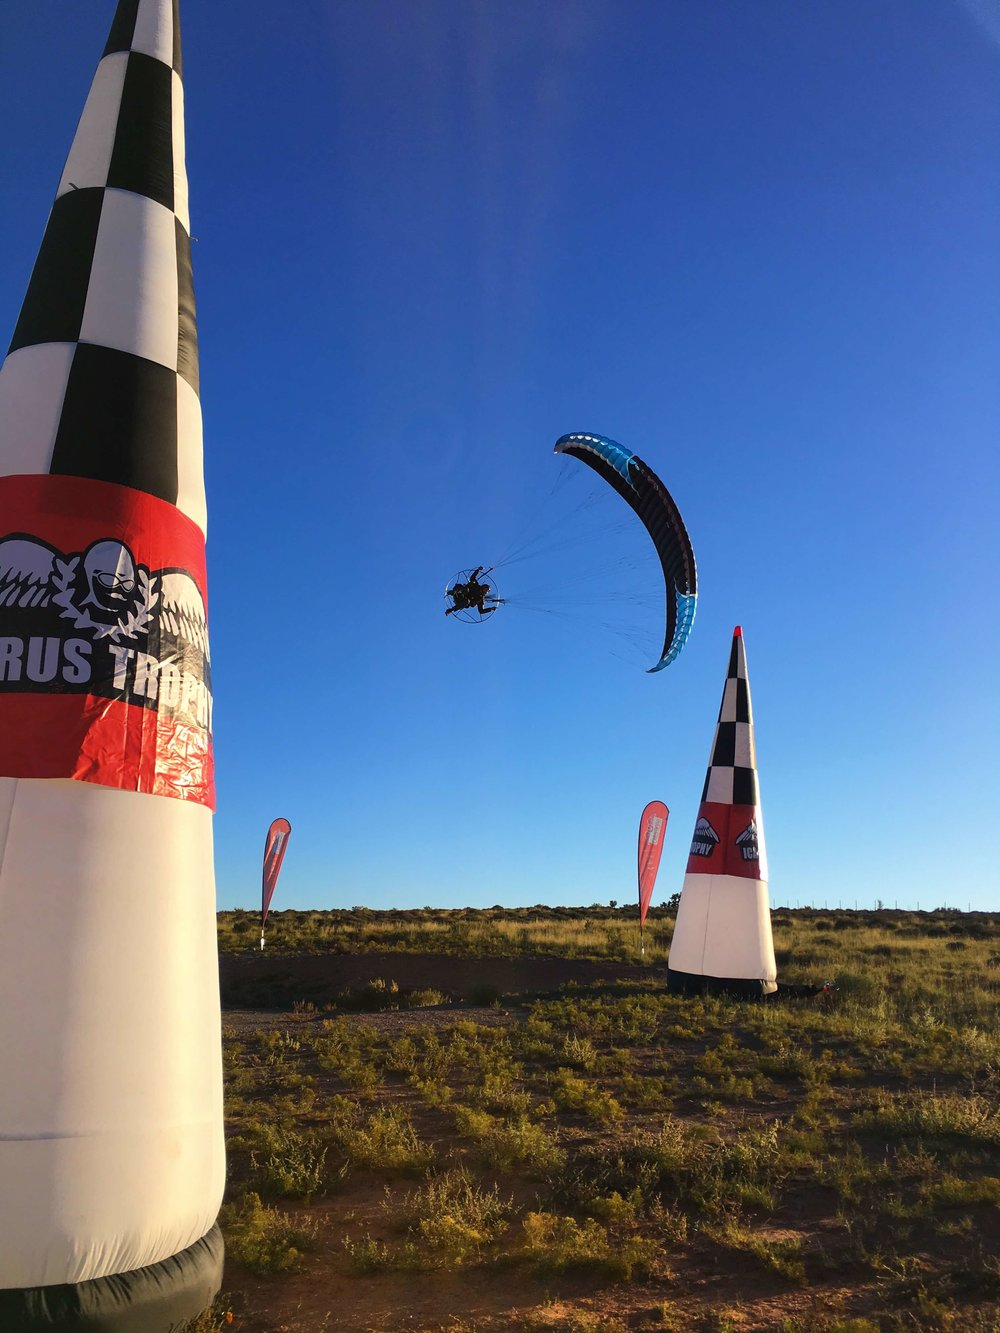 Icarus crew member Kester Haynes flying at the adventure class finish line.